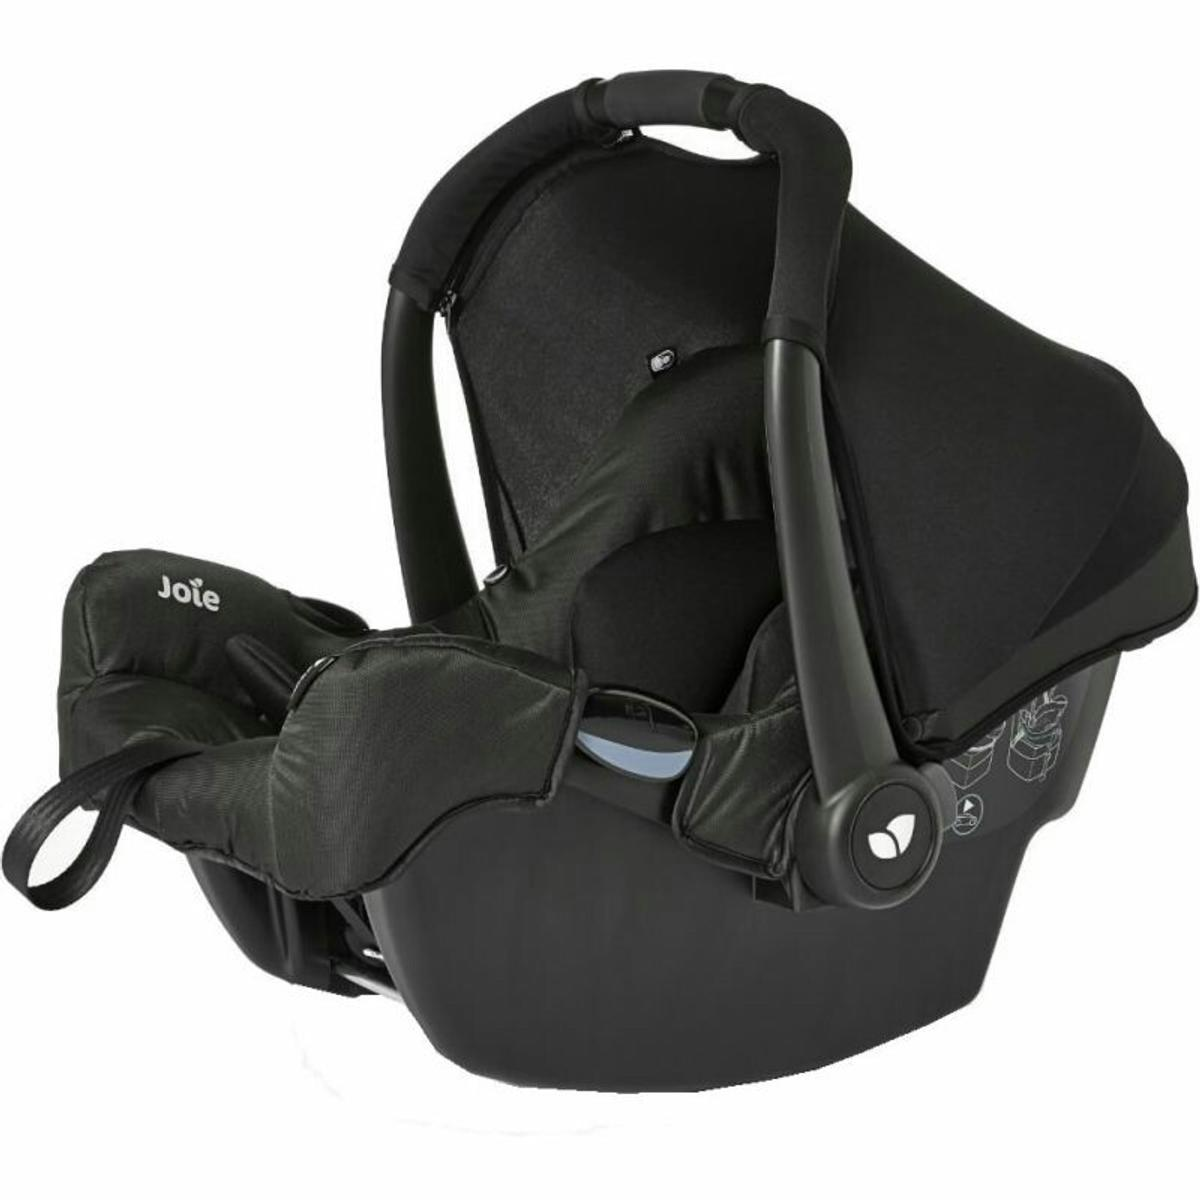 Travel System Joie Chrome Joie Chrome Travel System